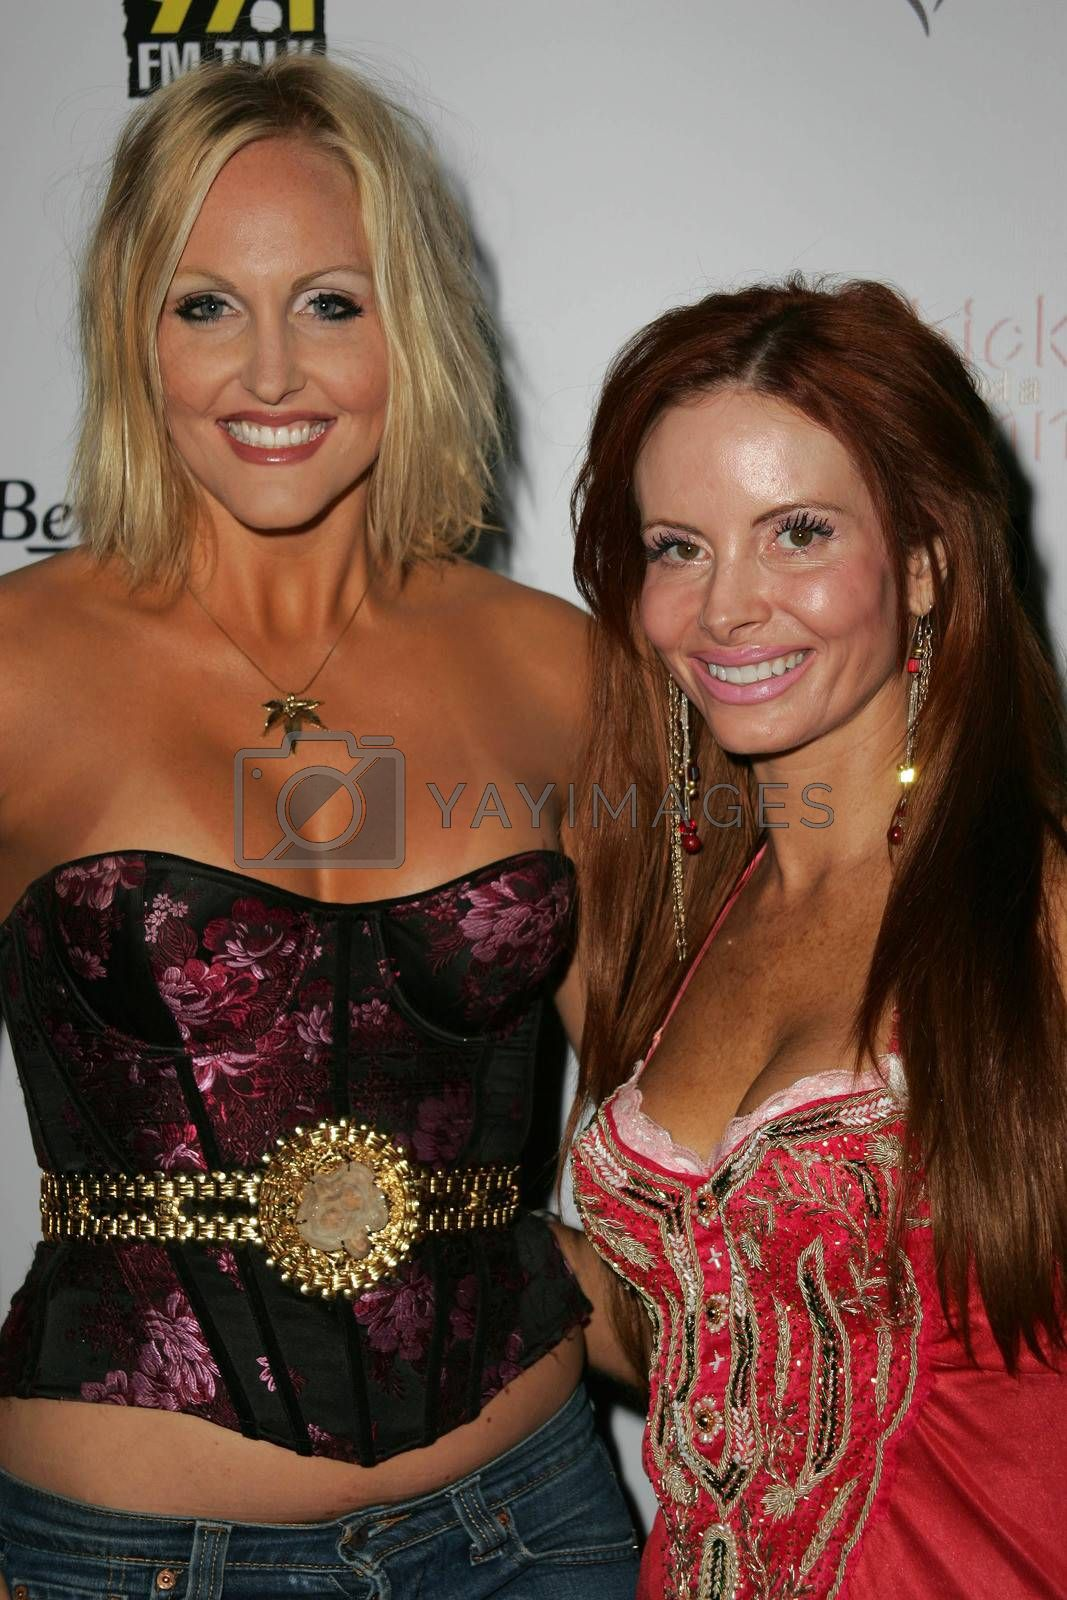 Meghan Fabulous and Phoebe Price at Bench Warmer's 2nd Annual 4th of July Celebration, The Day After, Hollywood, CA 06-29-05